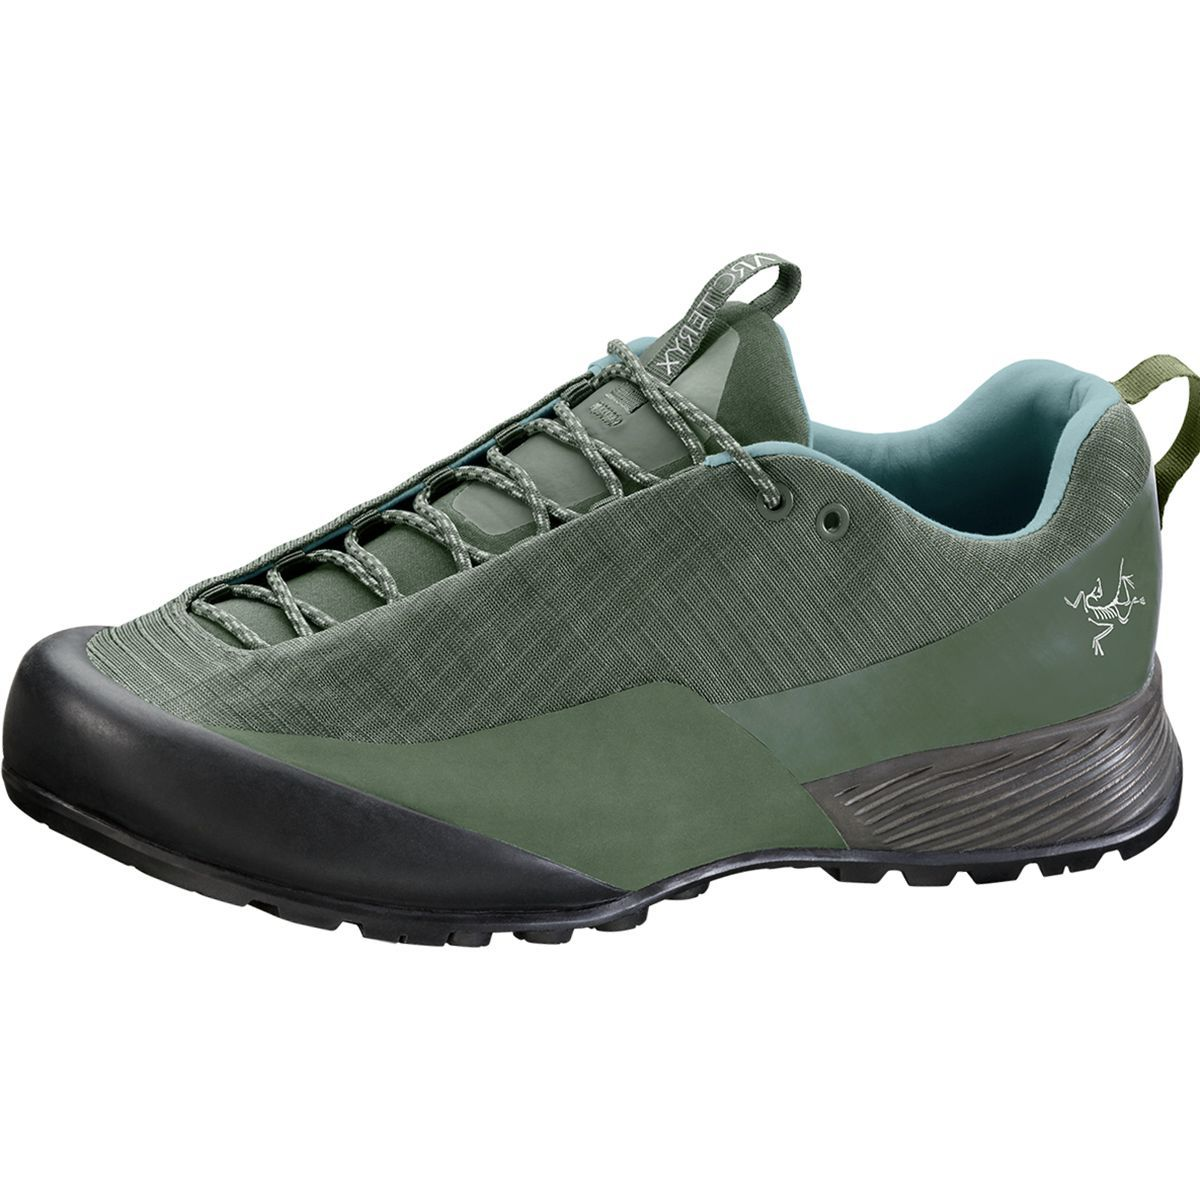 Arc'teryx Konseal FL GTX Approach Shoe - Women's